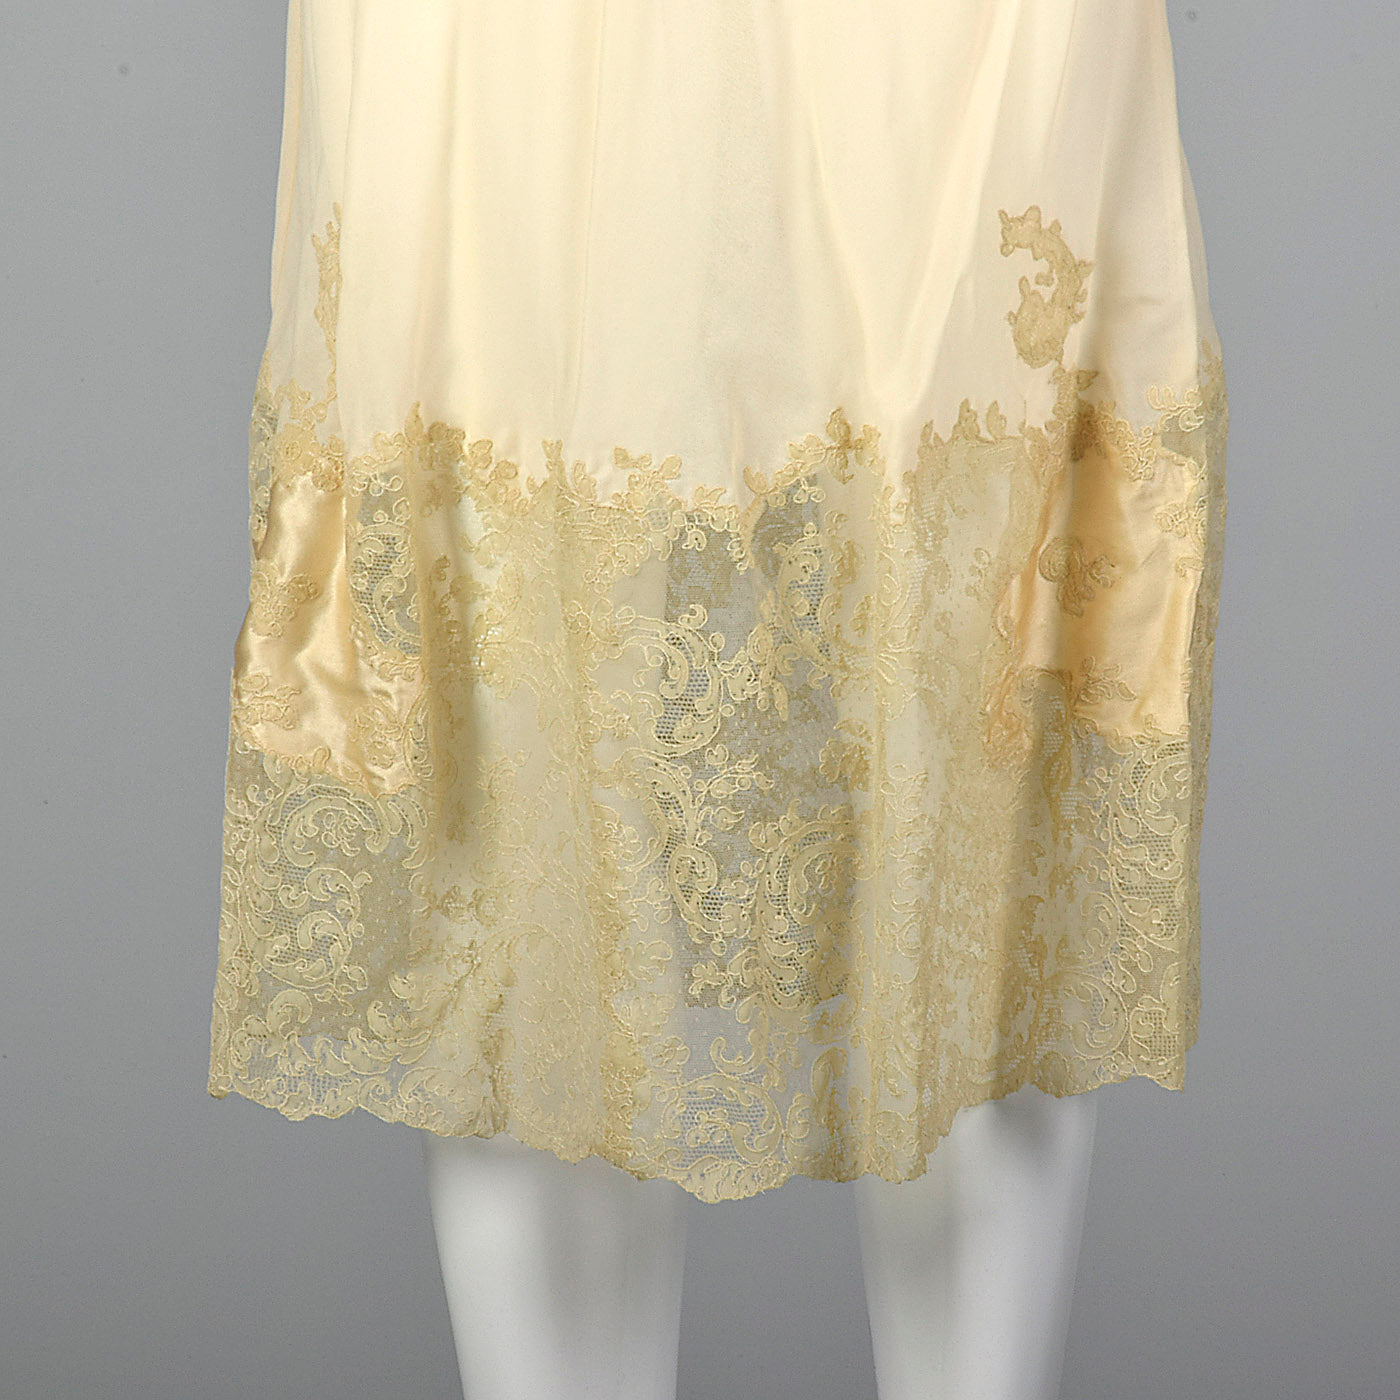 1960s Marshall Fields 28 Shop Cream Slip with Detailed Lace Trim